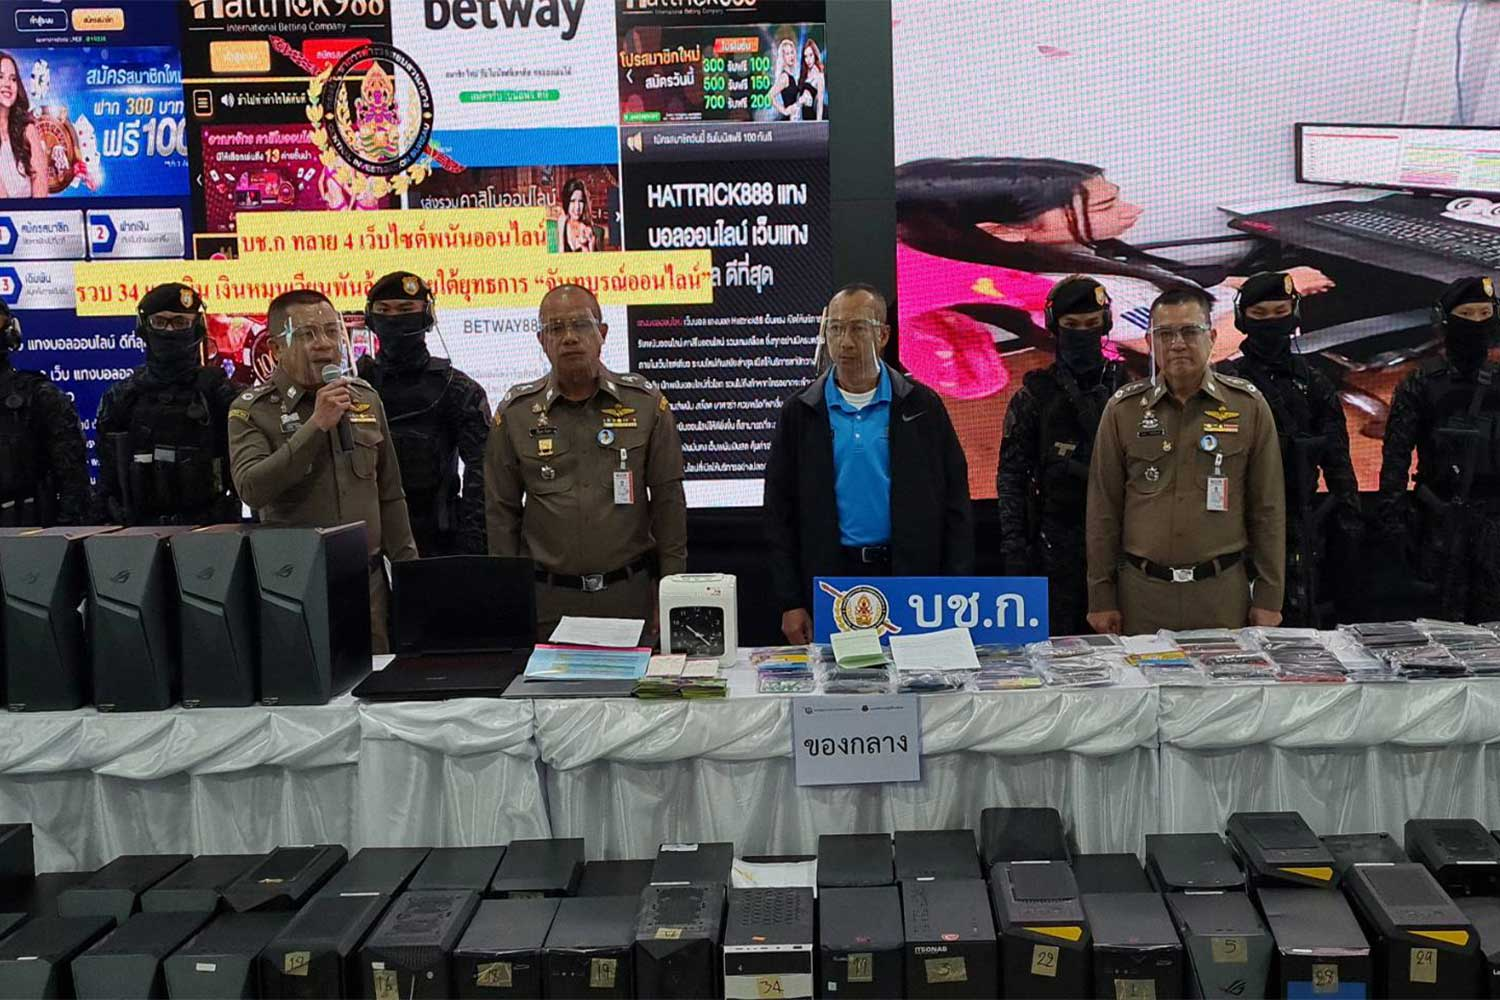 Police display the 69 computers and other evidence seized during raids on four converted shipping containers housing online gambling operations in Chanthaburi's Pong Nam Ron district, at a media briefing on Friday. (Photo: Wassayos Ngamkham)